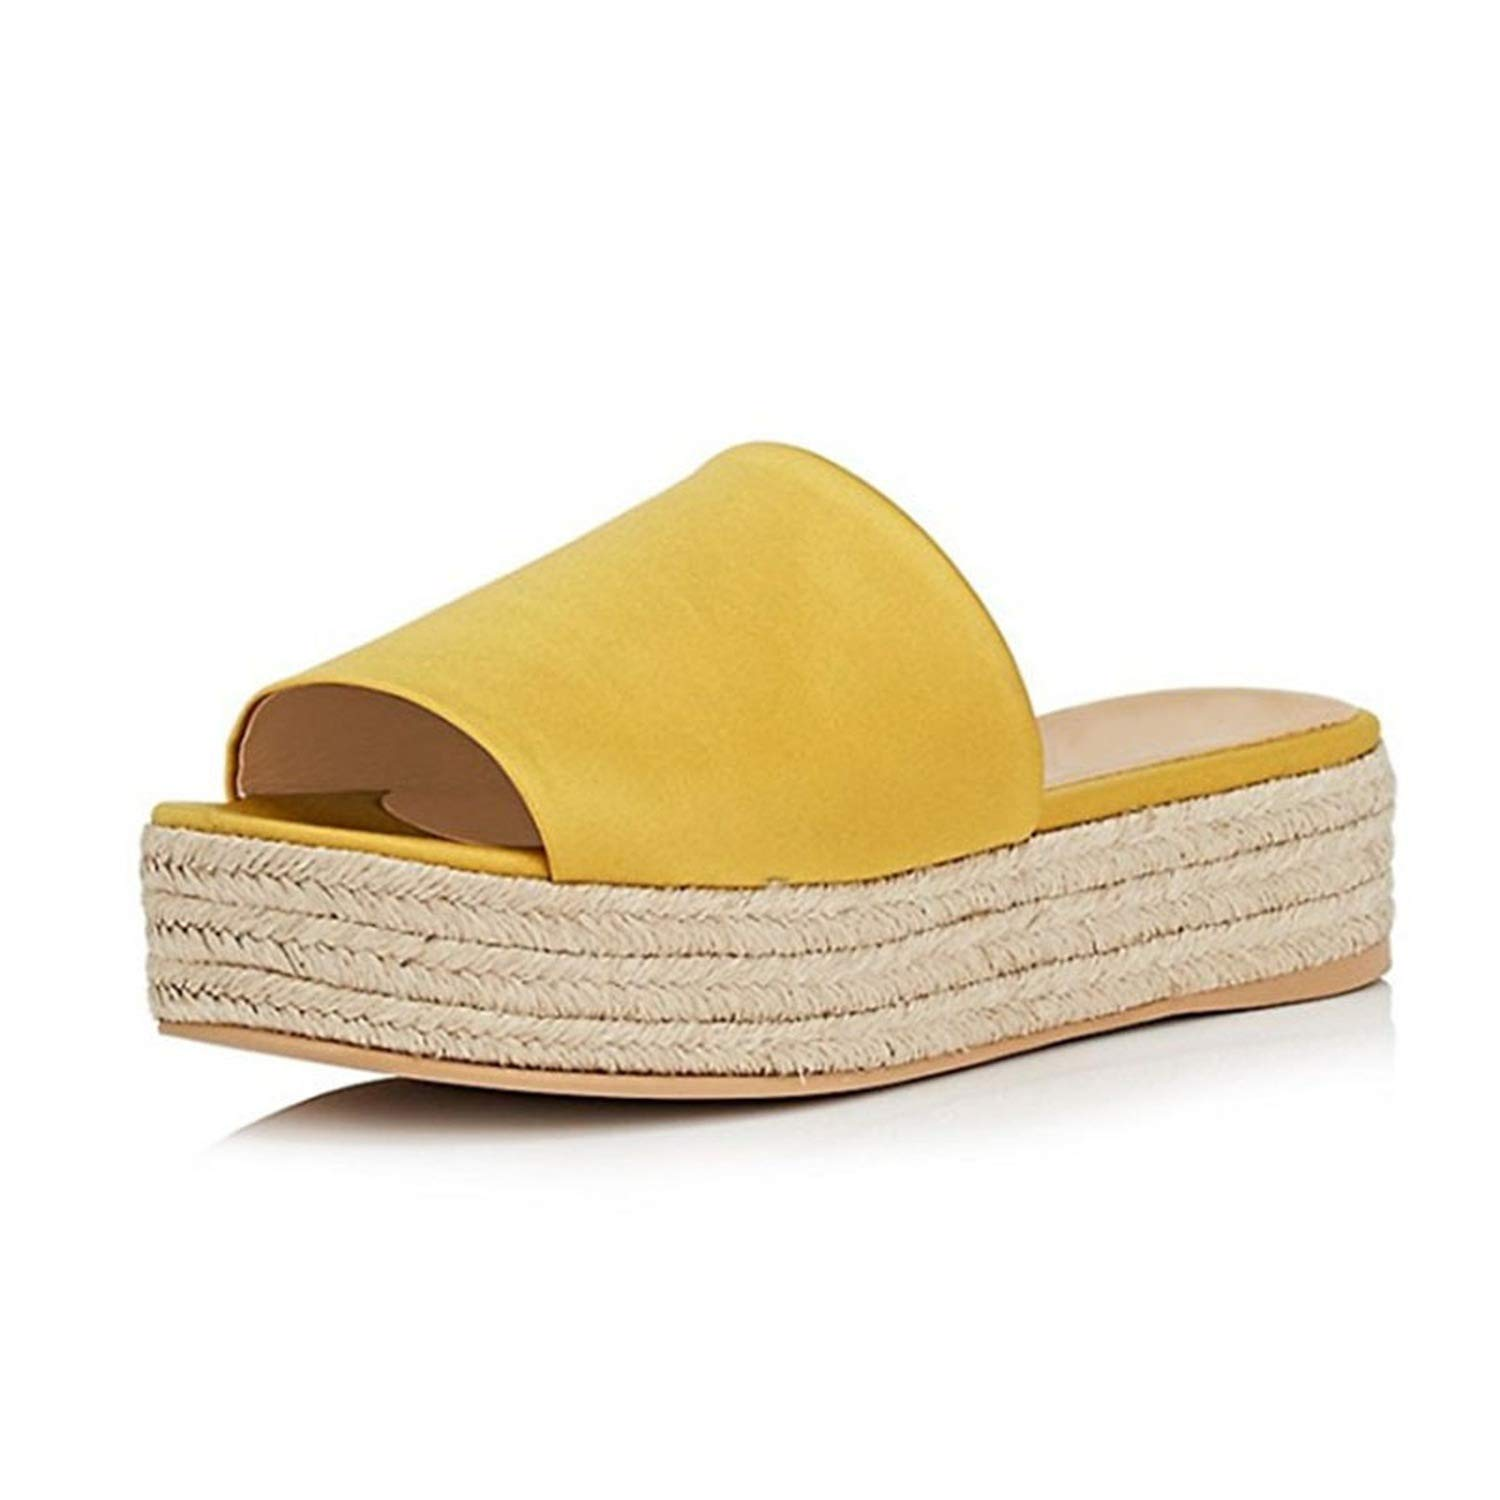 TY01 Platform Med Heel Flat Slippers Yellow Red bluee Big Size 8 9 15 Straw shoes Women's Slides Casual Summer